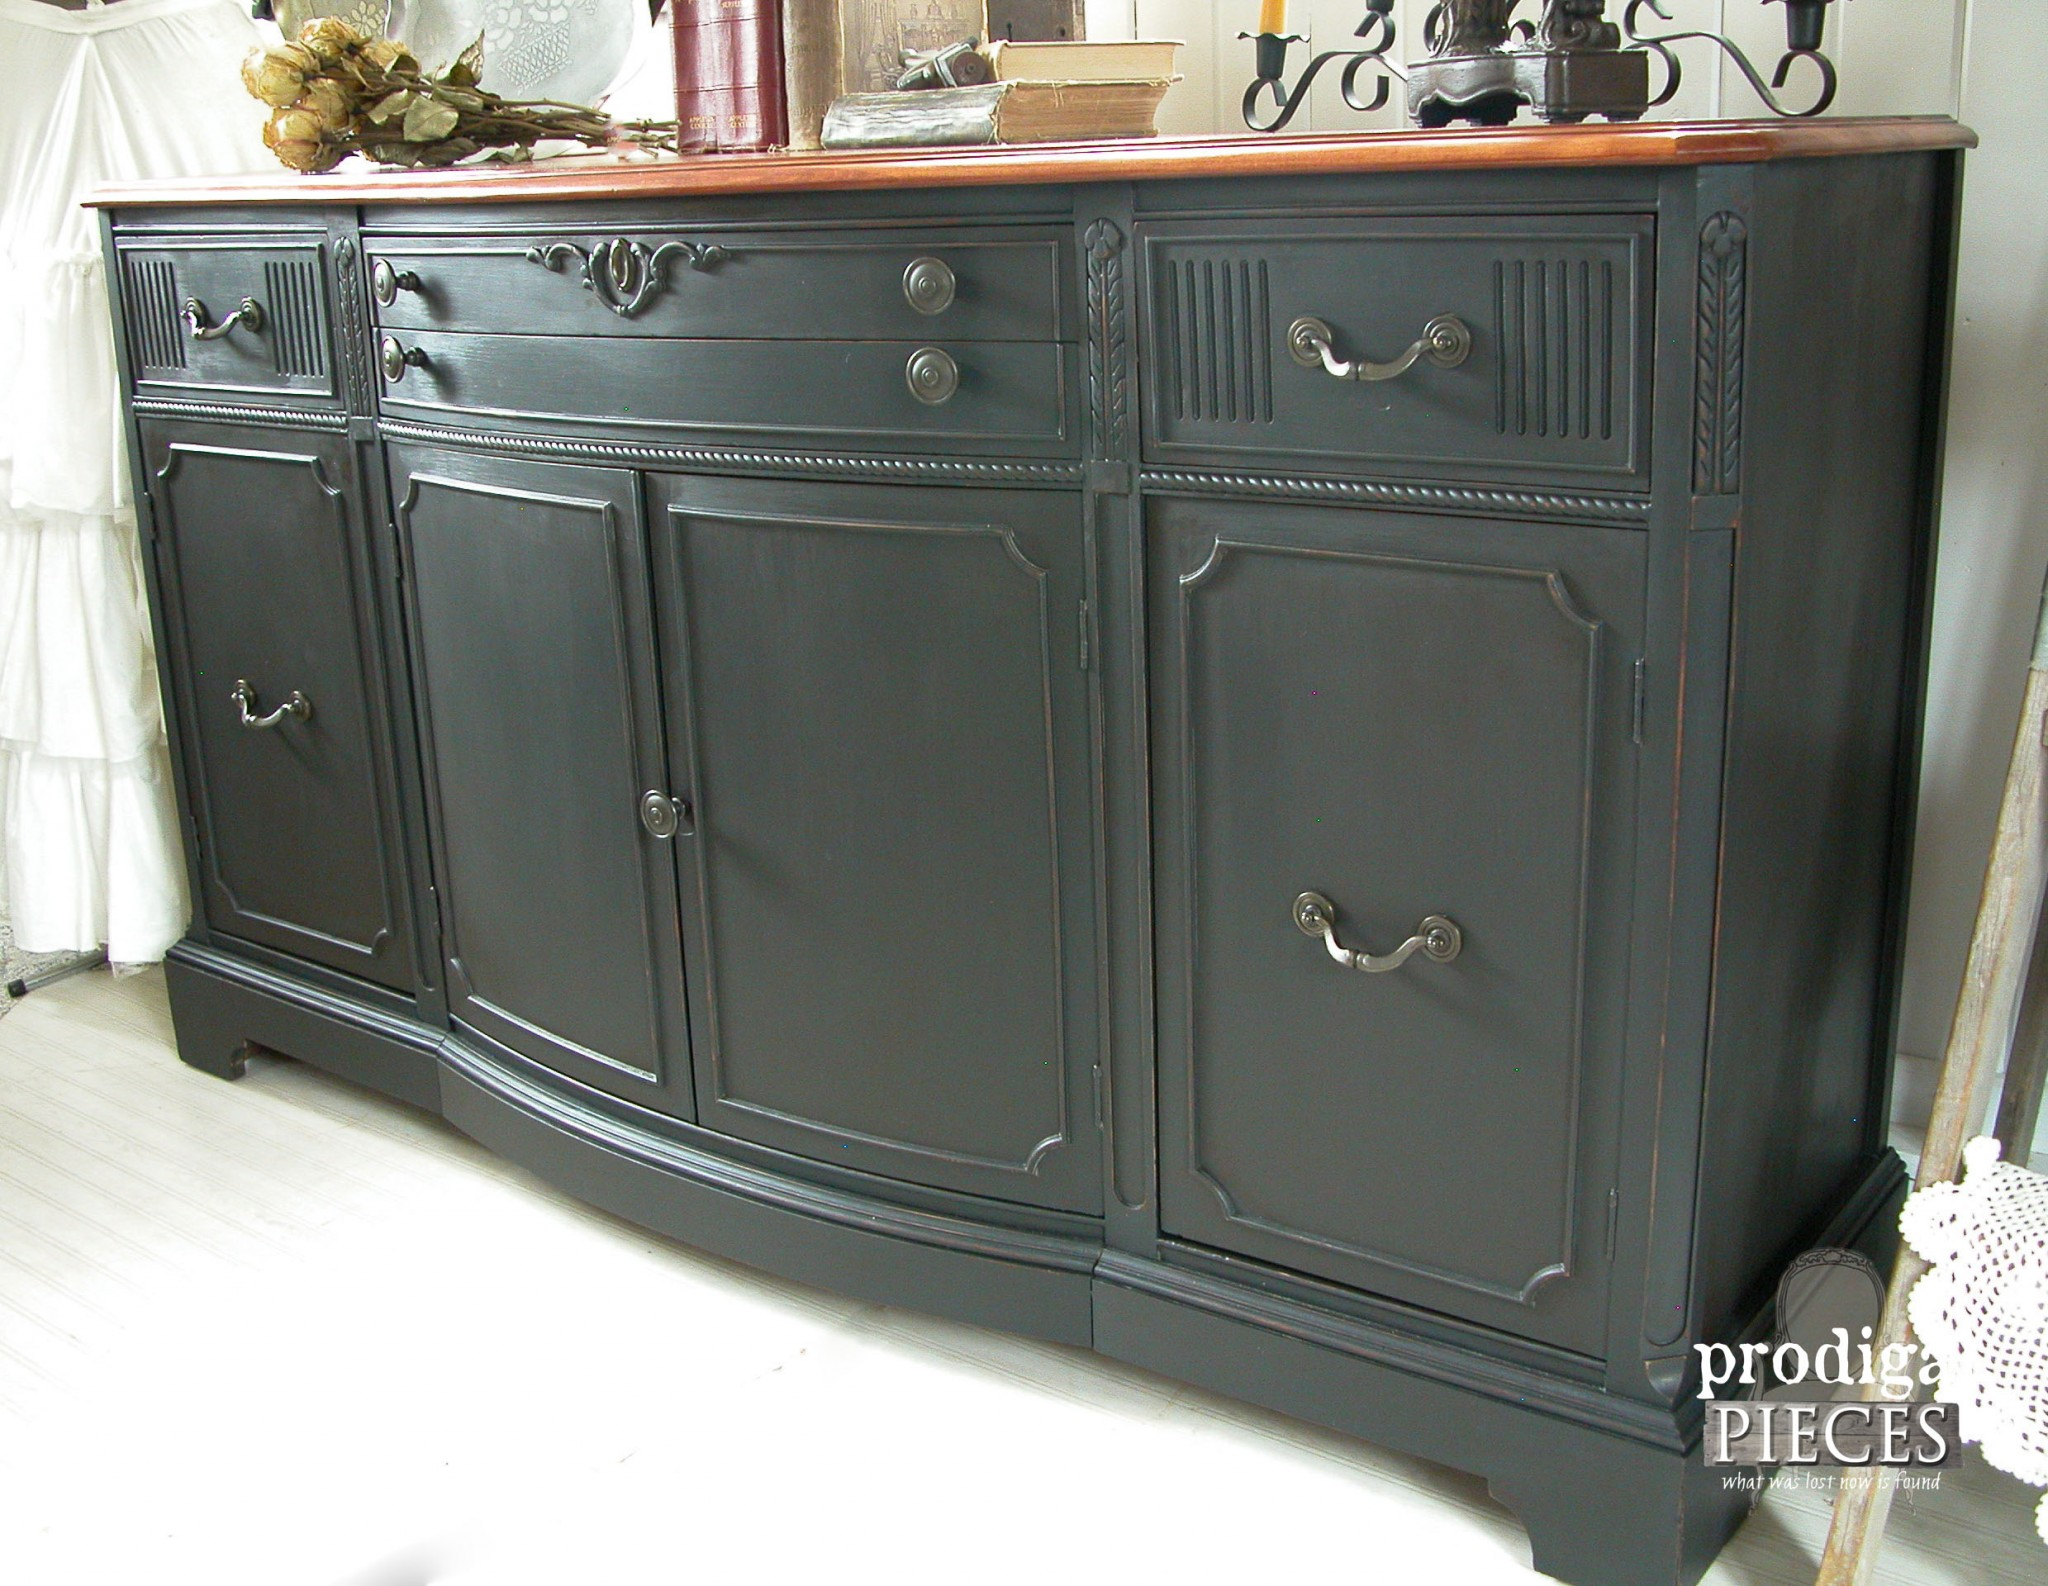 Side View of Vintage Black Buffet by Prodigal Pieces | www.prodigalpieces.com